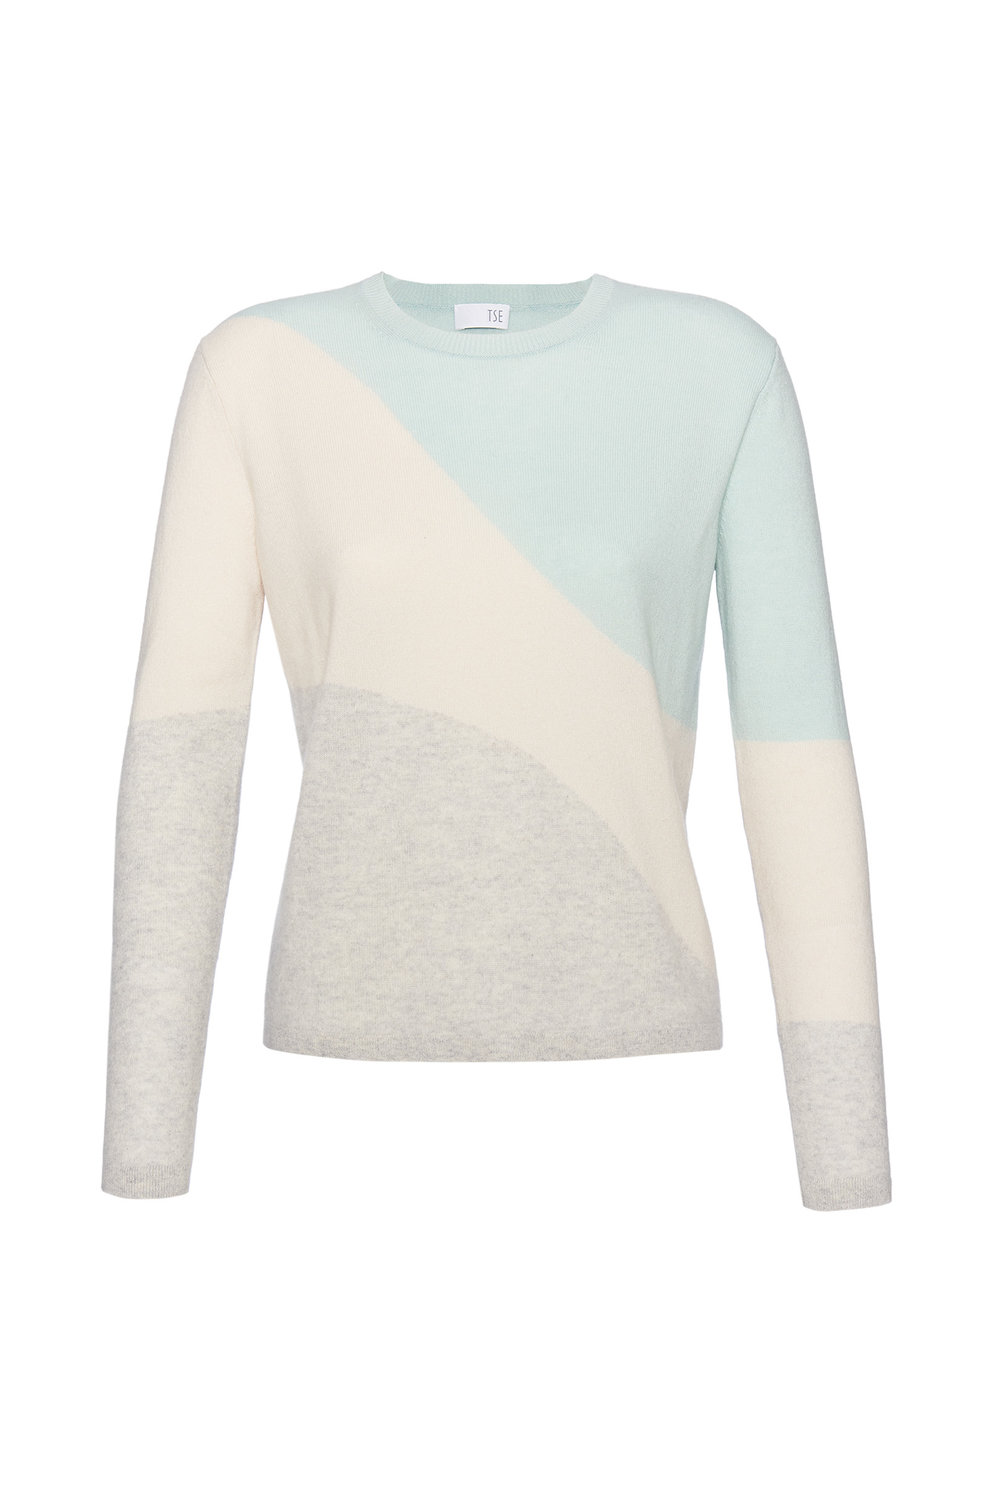 TSE Cashmere Crewneck Sweater in Instarsia Colorblock Wave, $525, at TSECashmere.com